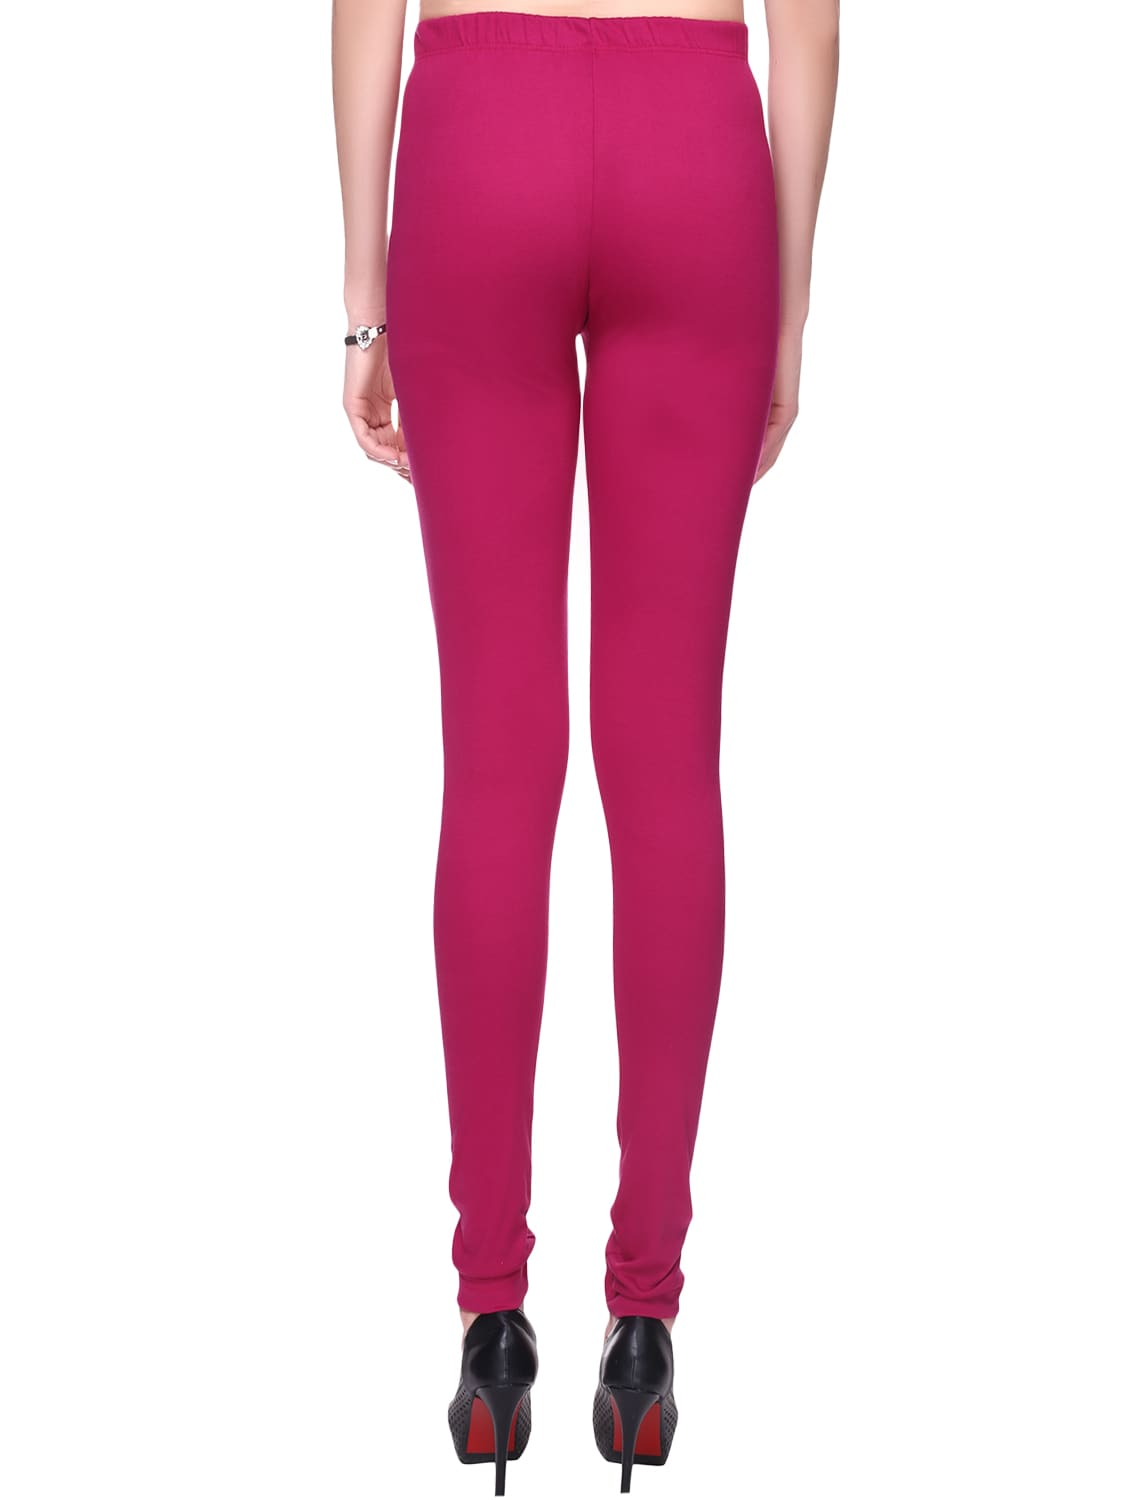 6cf19f629e8a7c Buy Pink Cotton Leggings for Women from Trasa for ₹356 at 49% off | 2019  Limeroad.com